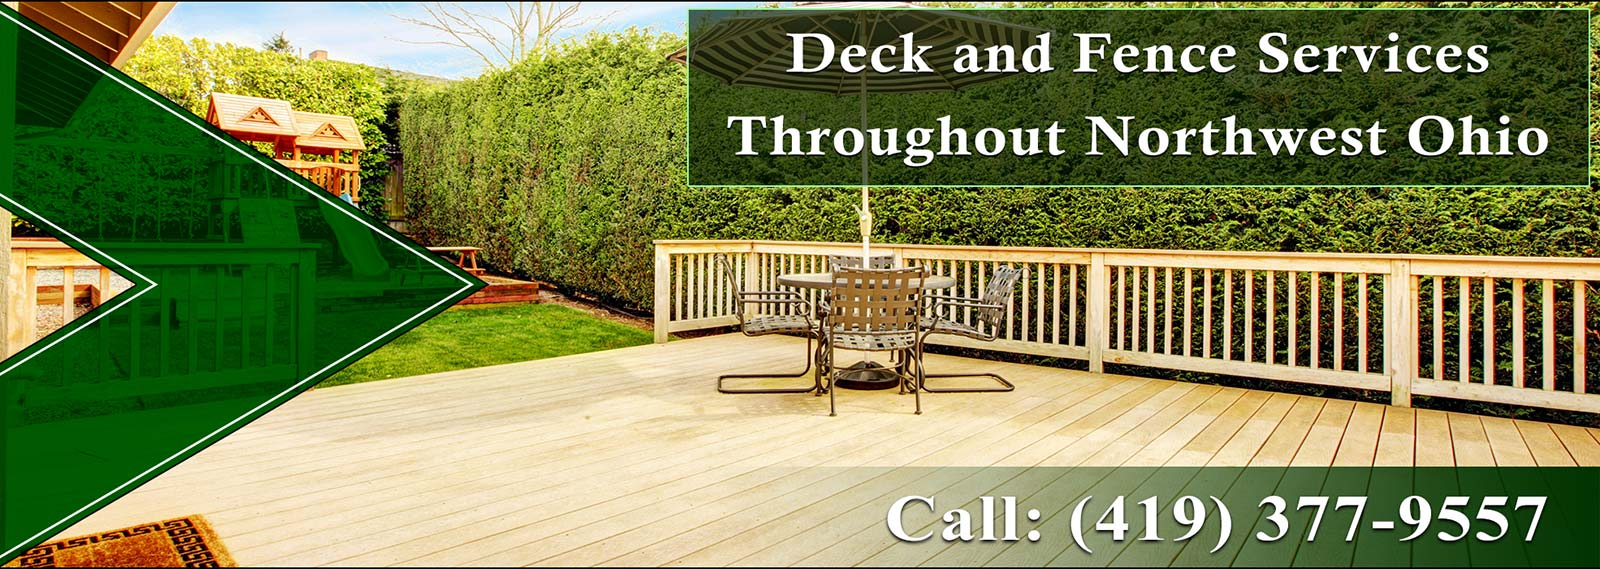 Pine River Deck and Fence